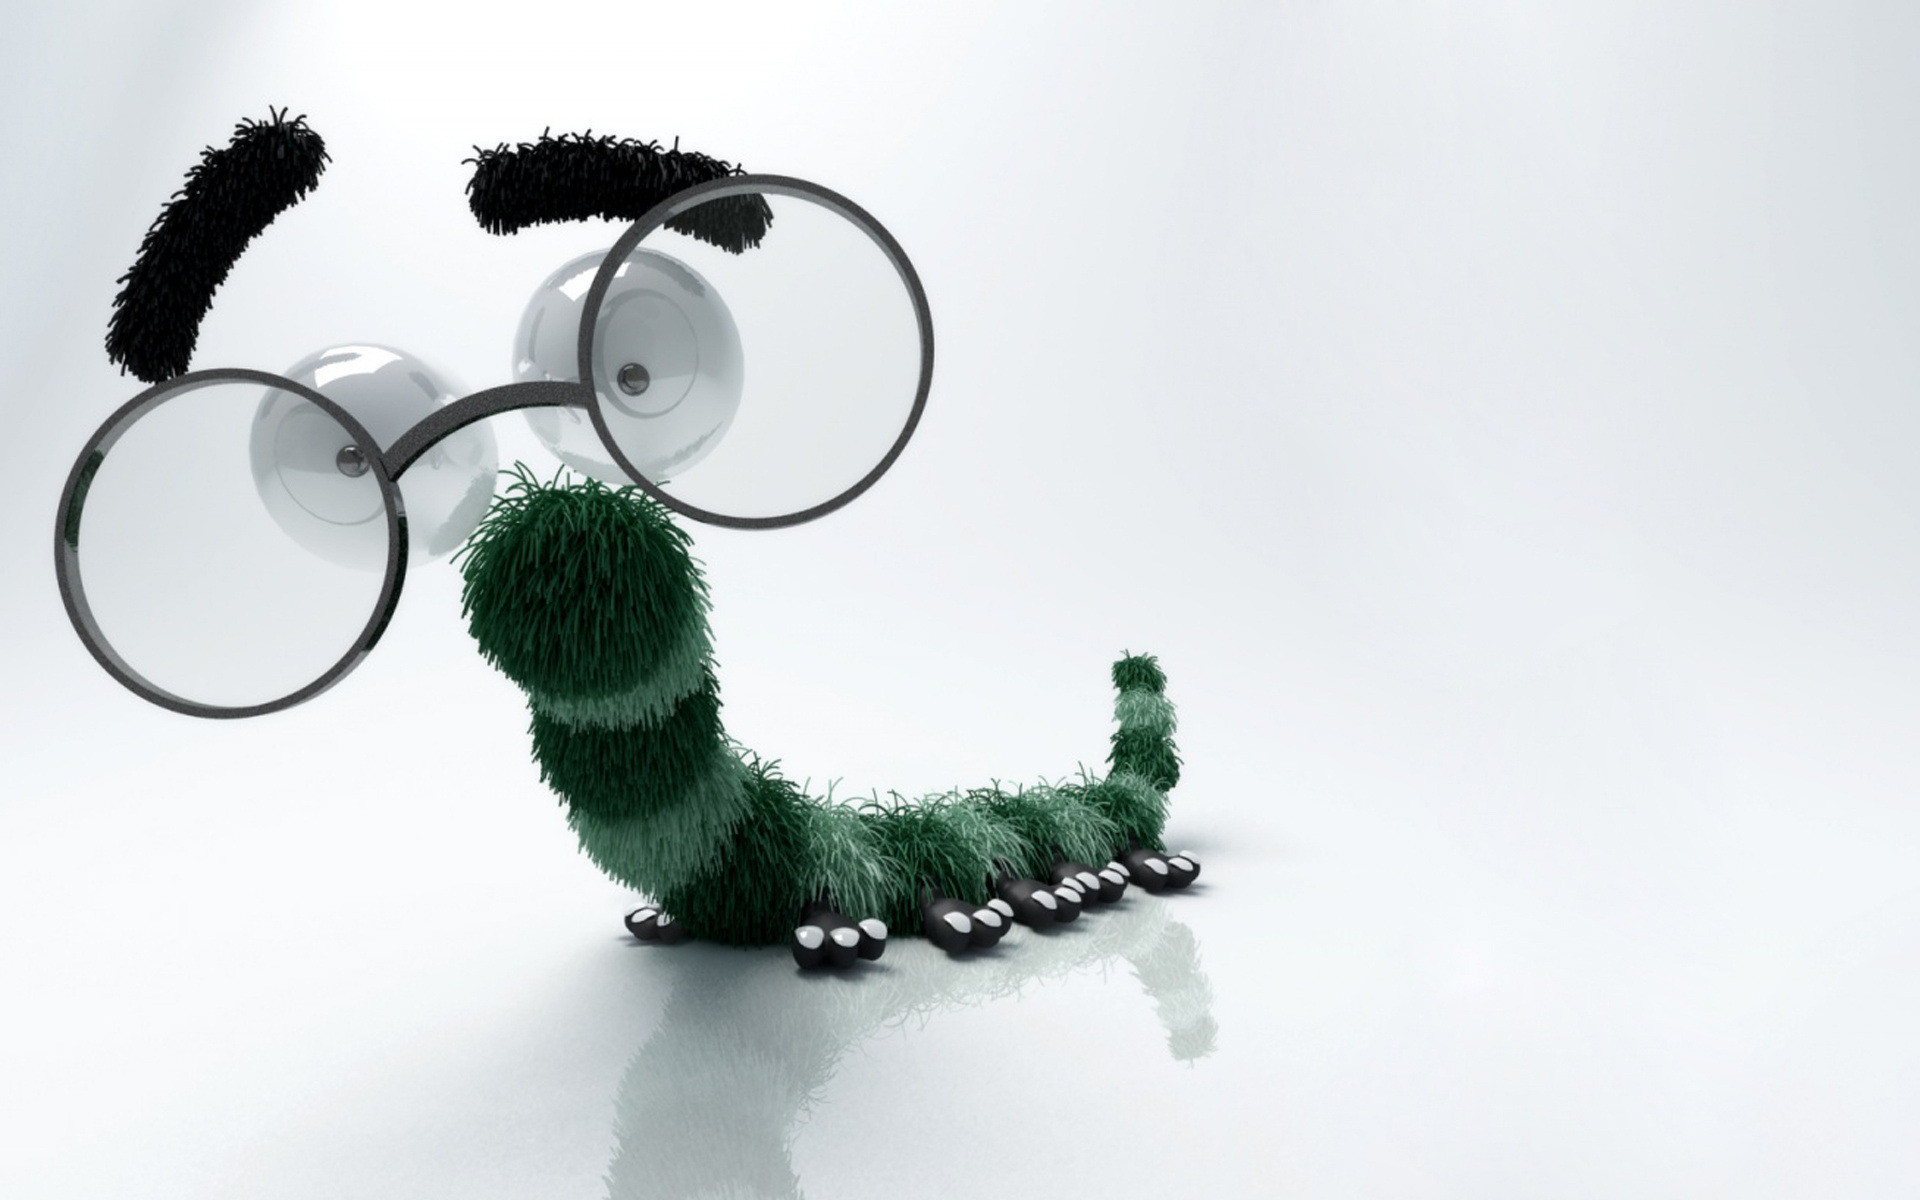 Who knew caterpillars had Specsavers?